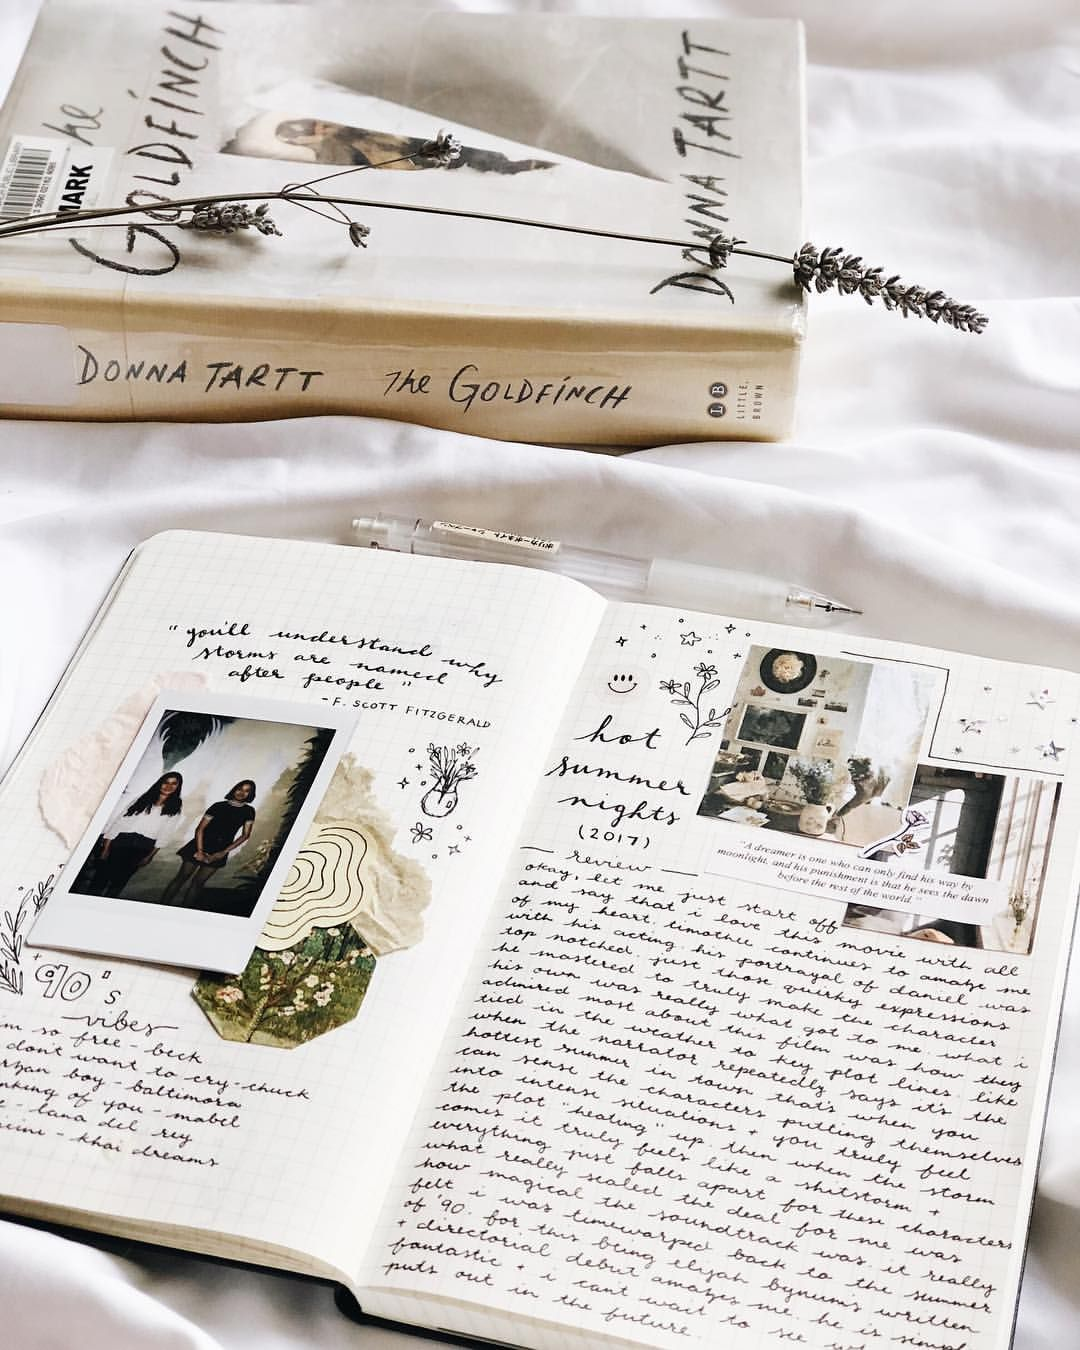 One Thing That Bugs Me About The Bookstagram Studygram Comm